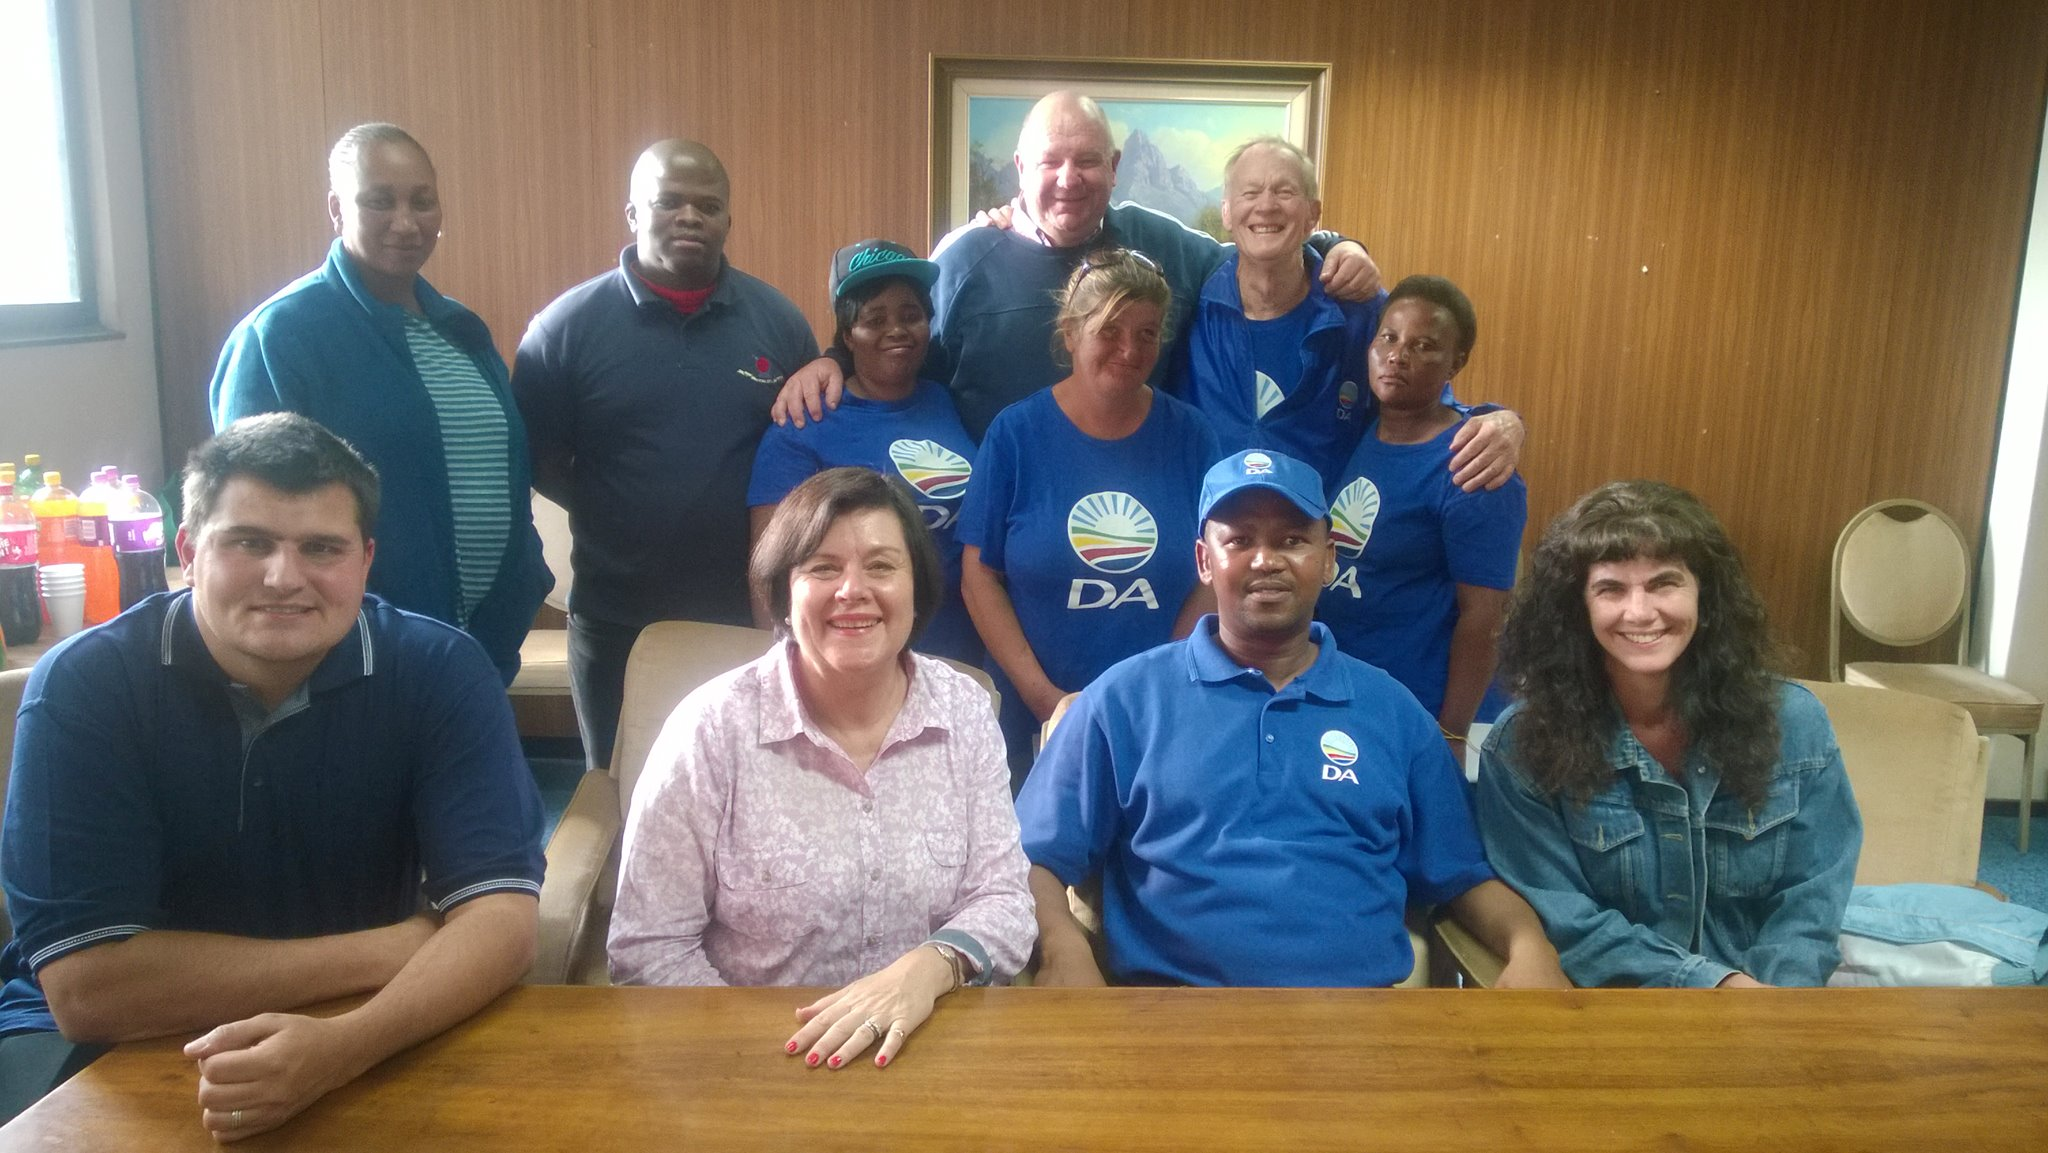 DA WARD 32 AGM,  front far right me and on my left newly elected Chairman Marius